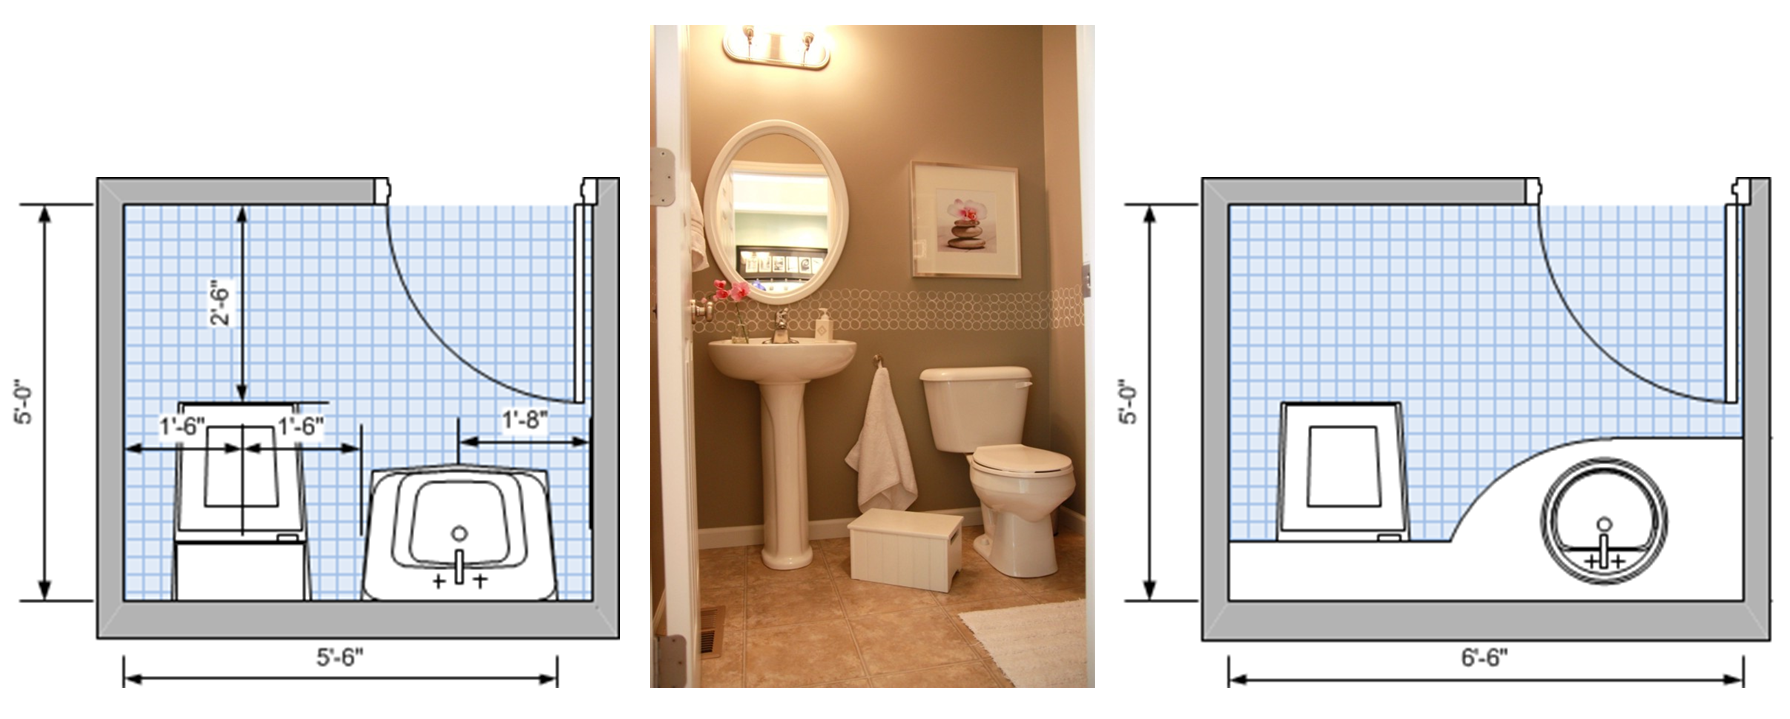 Minimum area two-fixture plan on the left; optimum area two-fixture plan on the right; where plumbing runs along one wall.